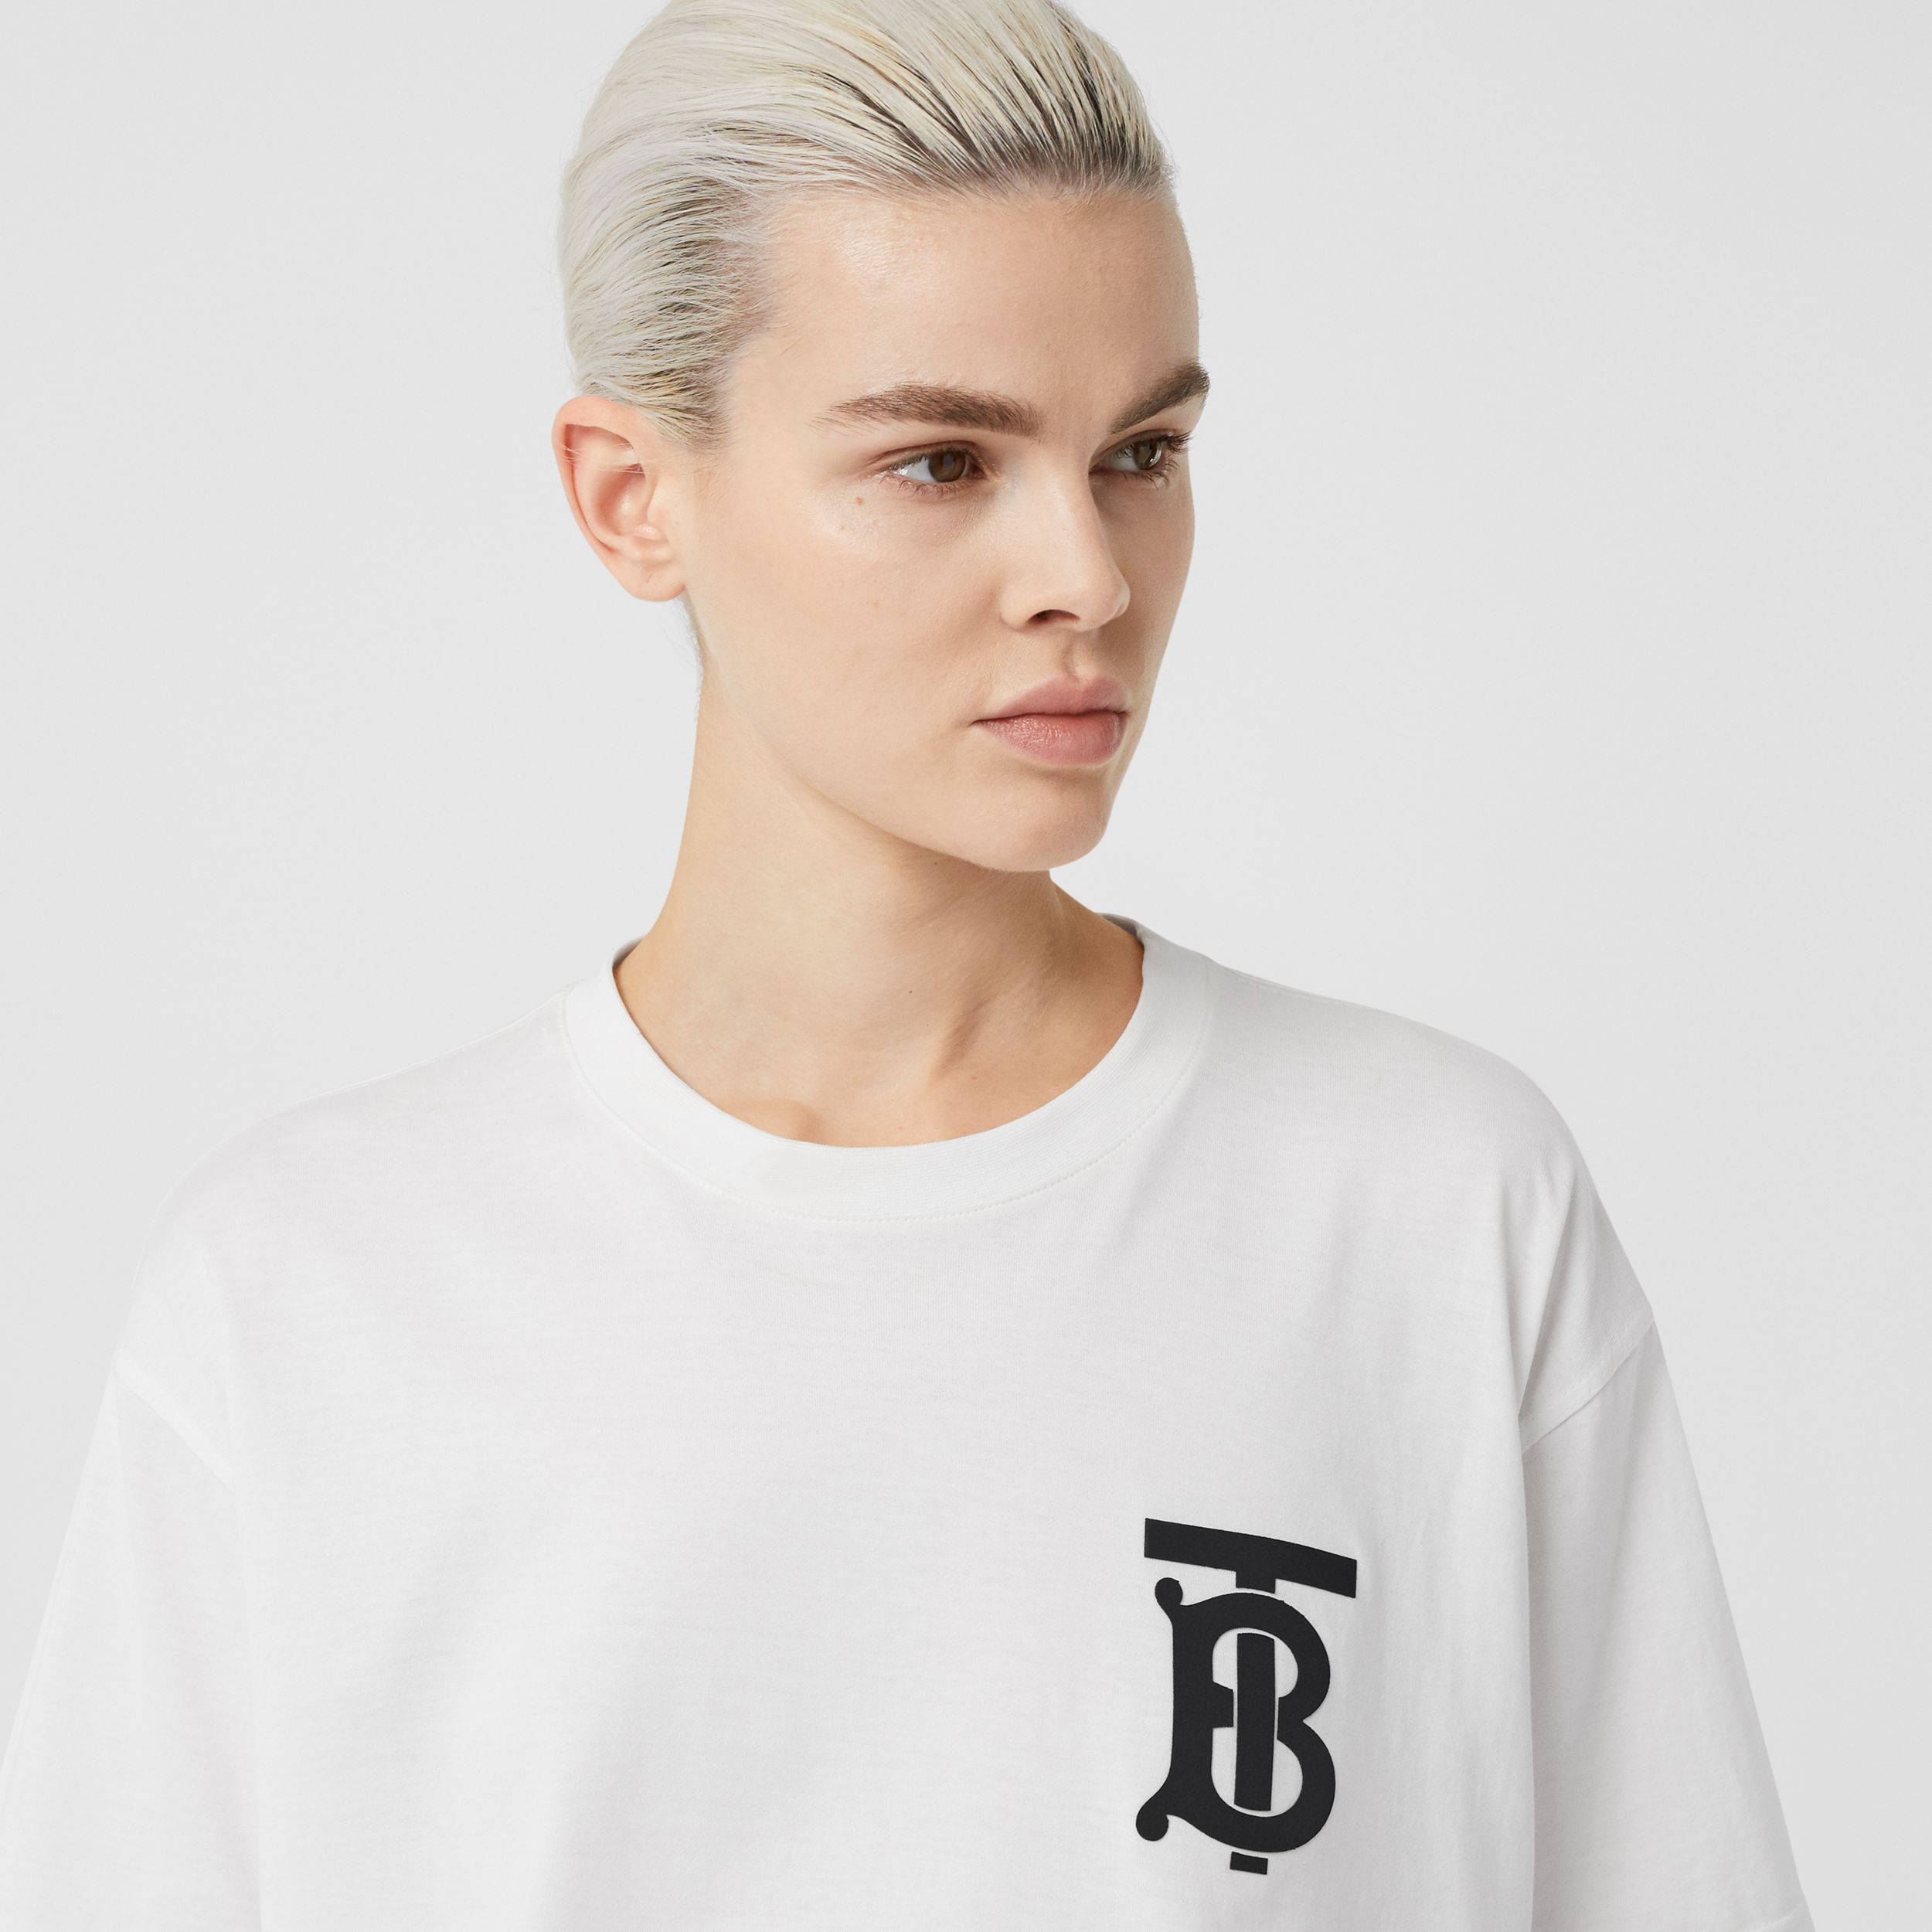 Monogram Motif Cotton Oversized T-shirt in White - Women | Burberry - 2